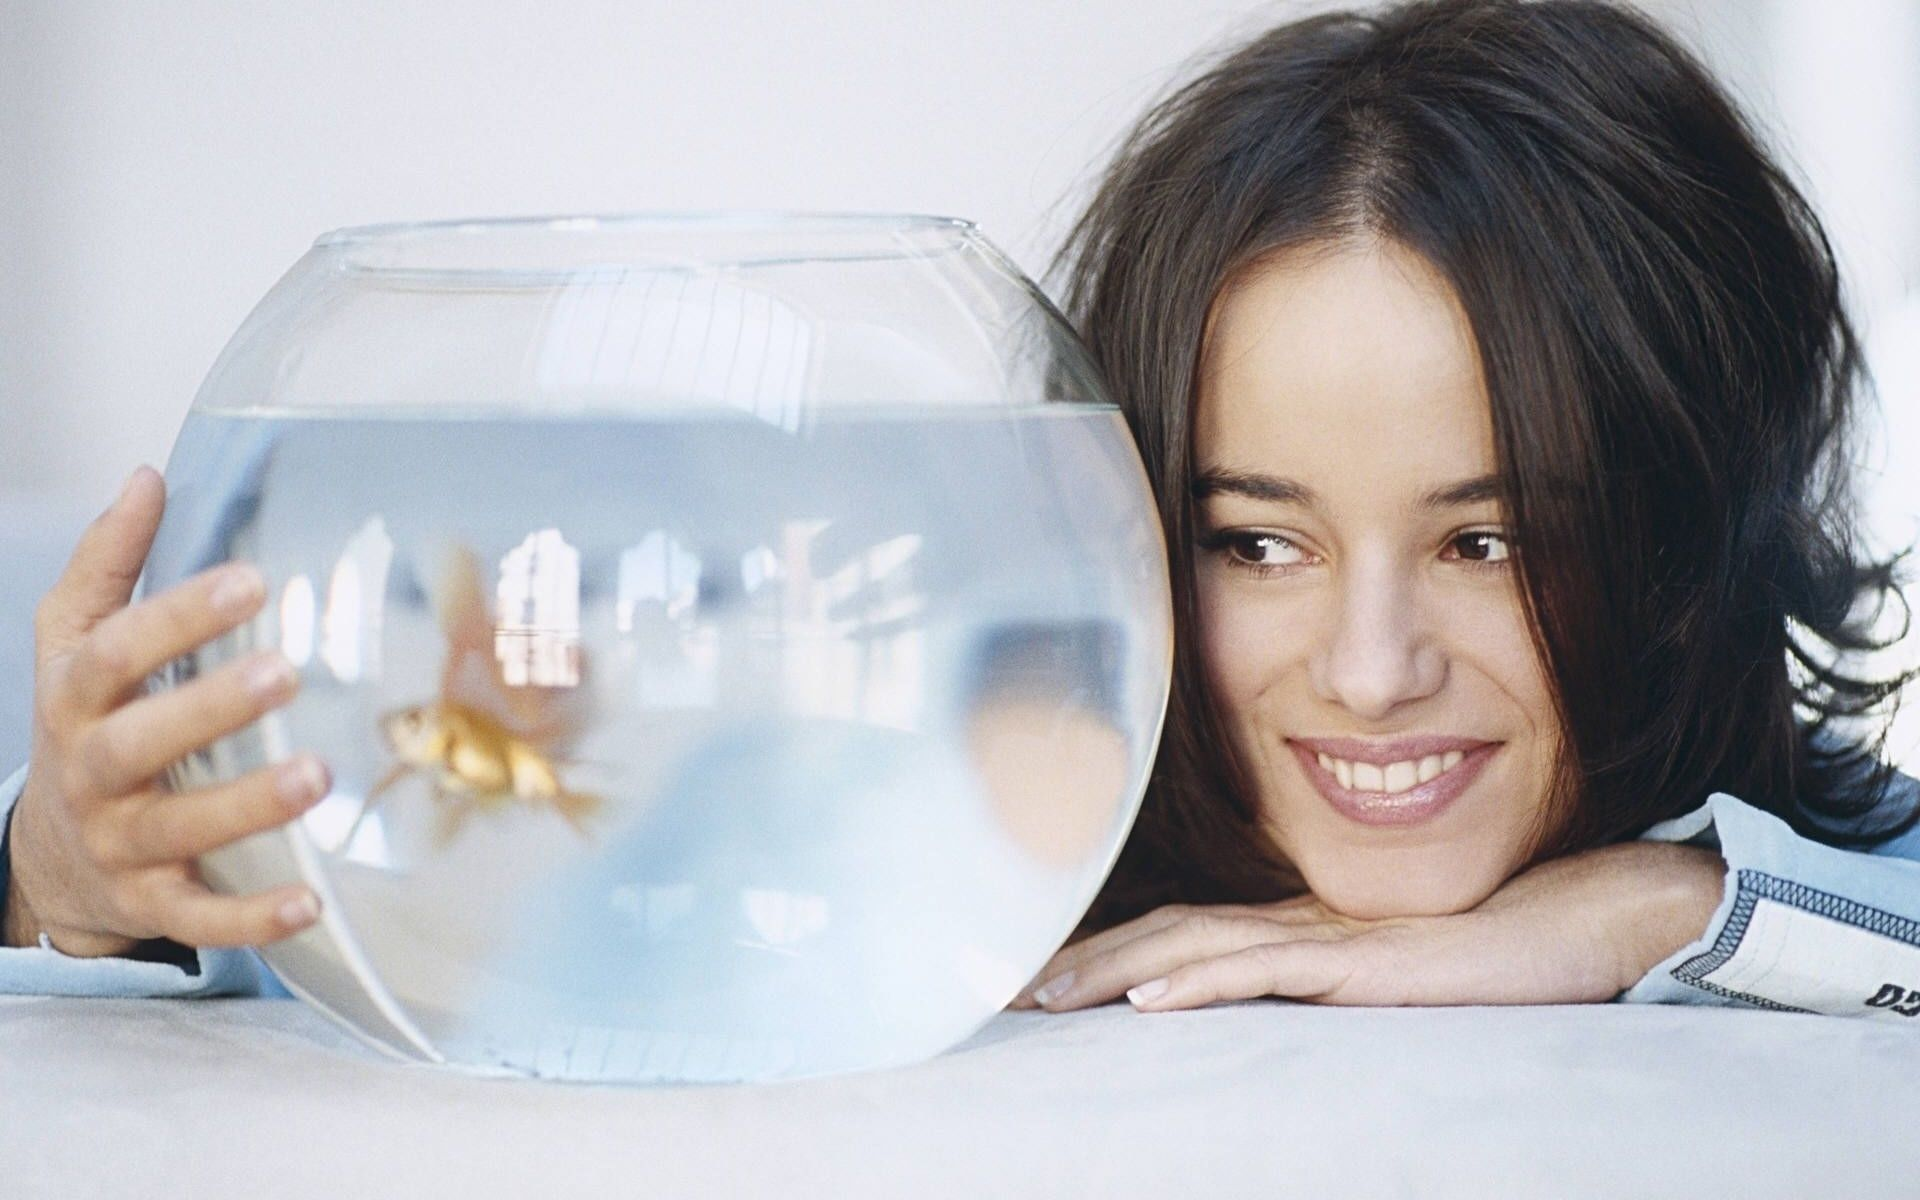 STAR FREE DOWNLOAD HD WALLPAPERS Alizee Hd Wallpapers Free Download